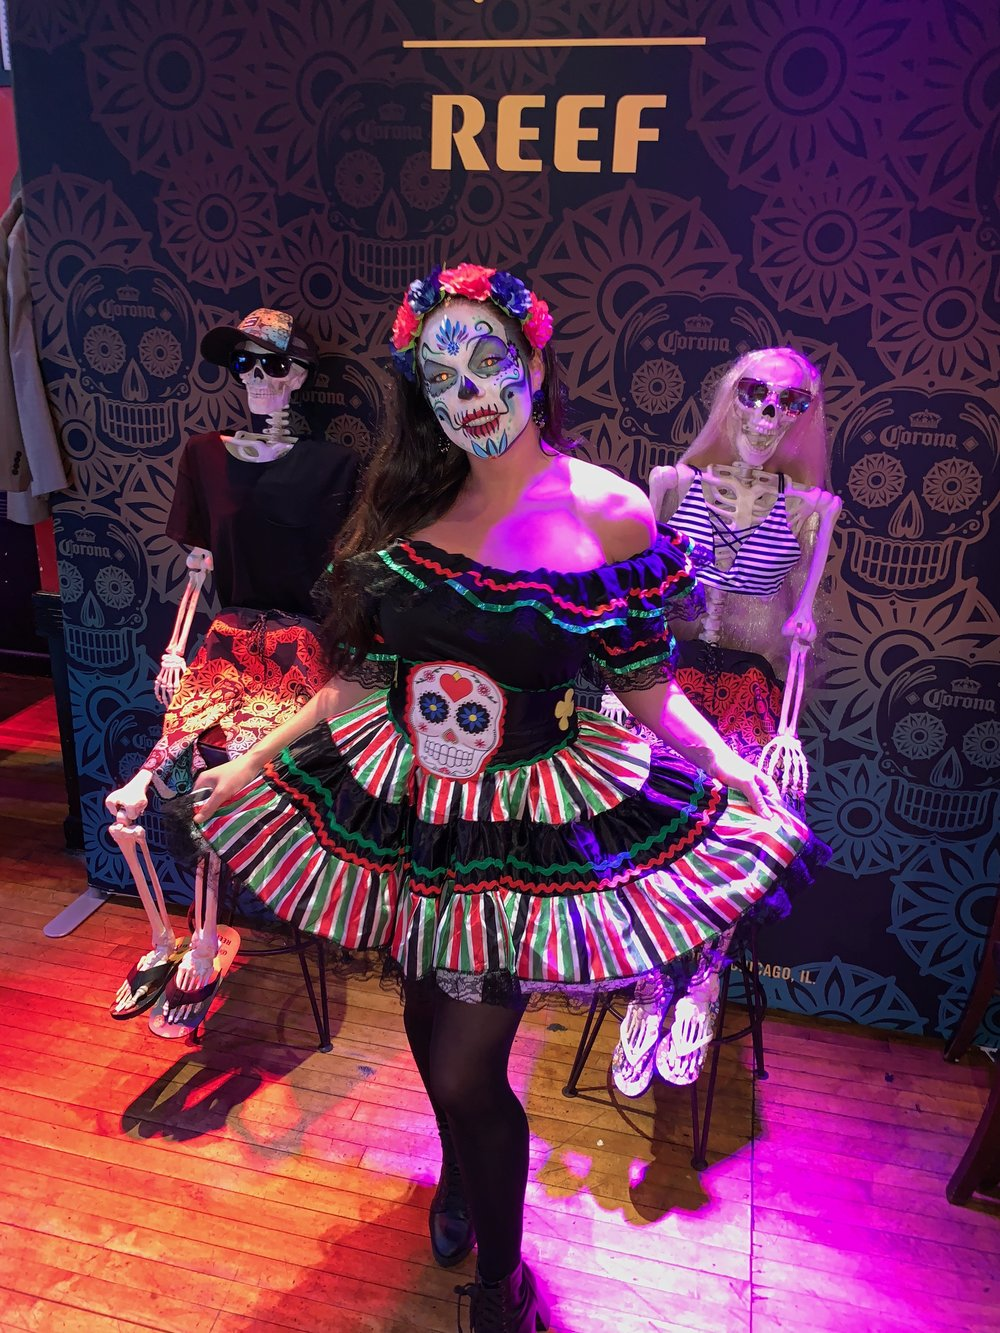 efa95048d38c The Joester Loria Group celebrated Dia de Los Muertos at the Corona x Reef  collaboration launch party at Point Break in New York City last week.